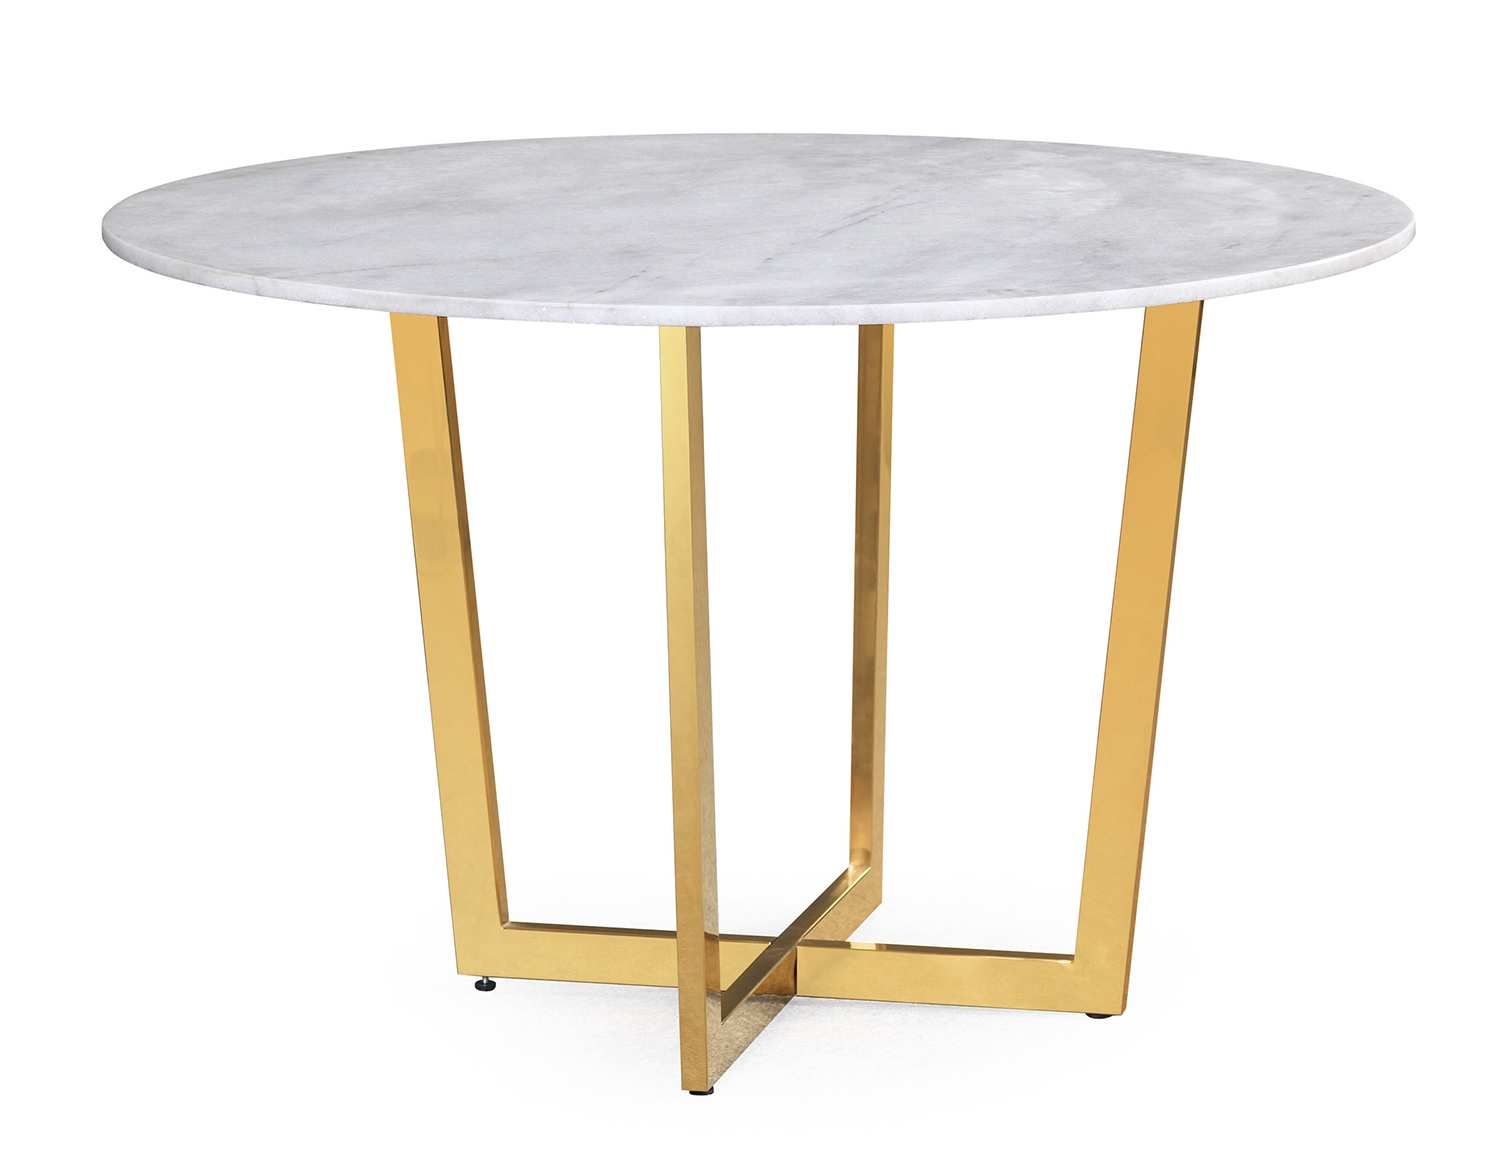 TOV Furniture Maxim Dining Table - White/Gold